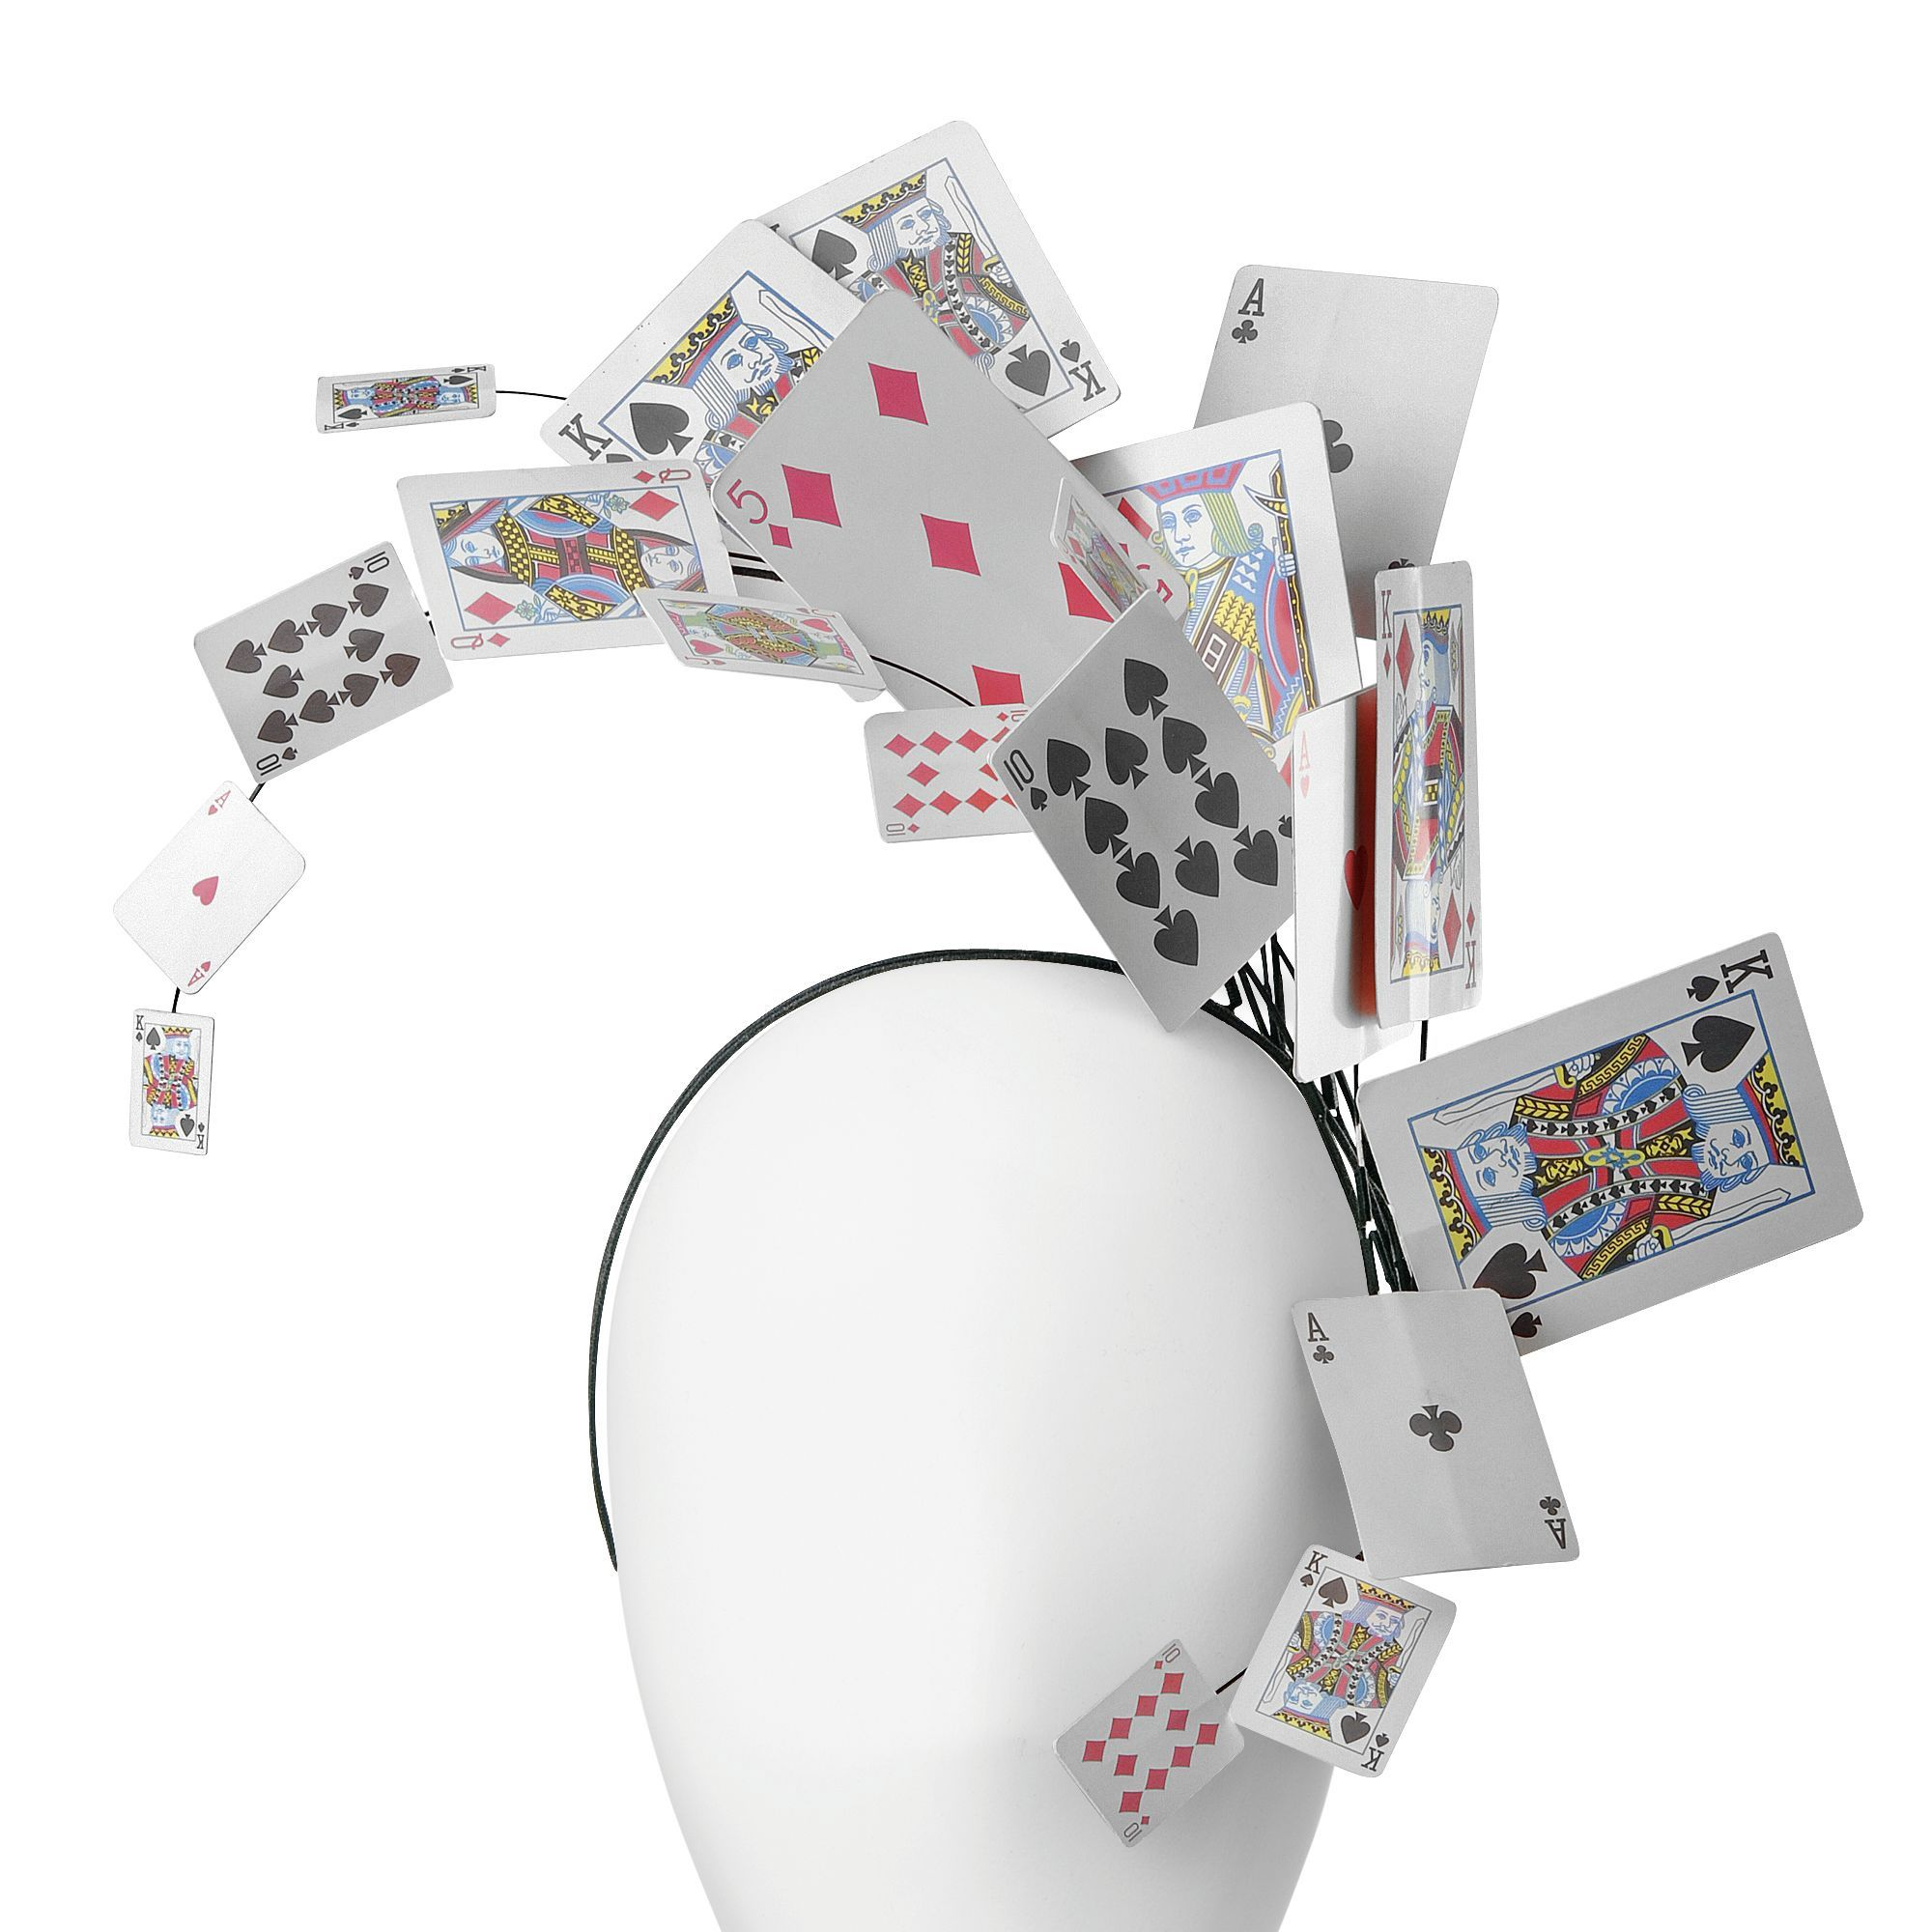 New Tricks Up Your Sleeve: Old Playing Card Crafts to Fall in Love ...